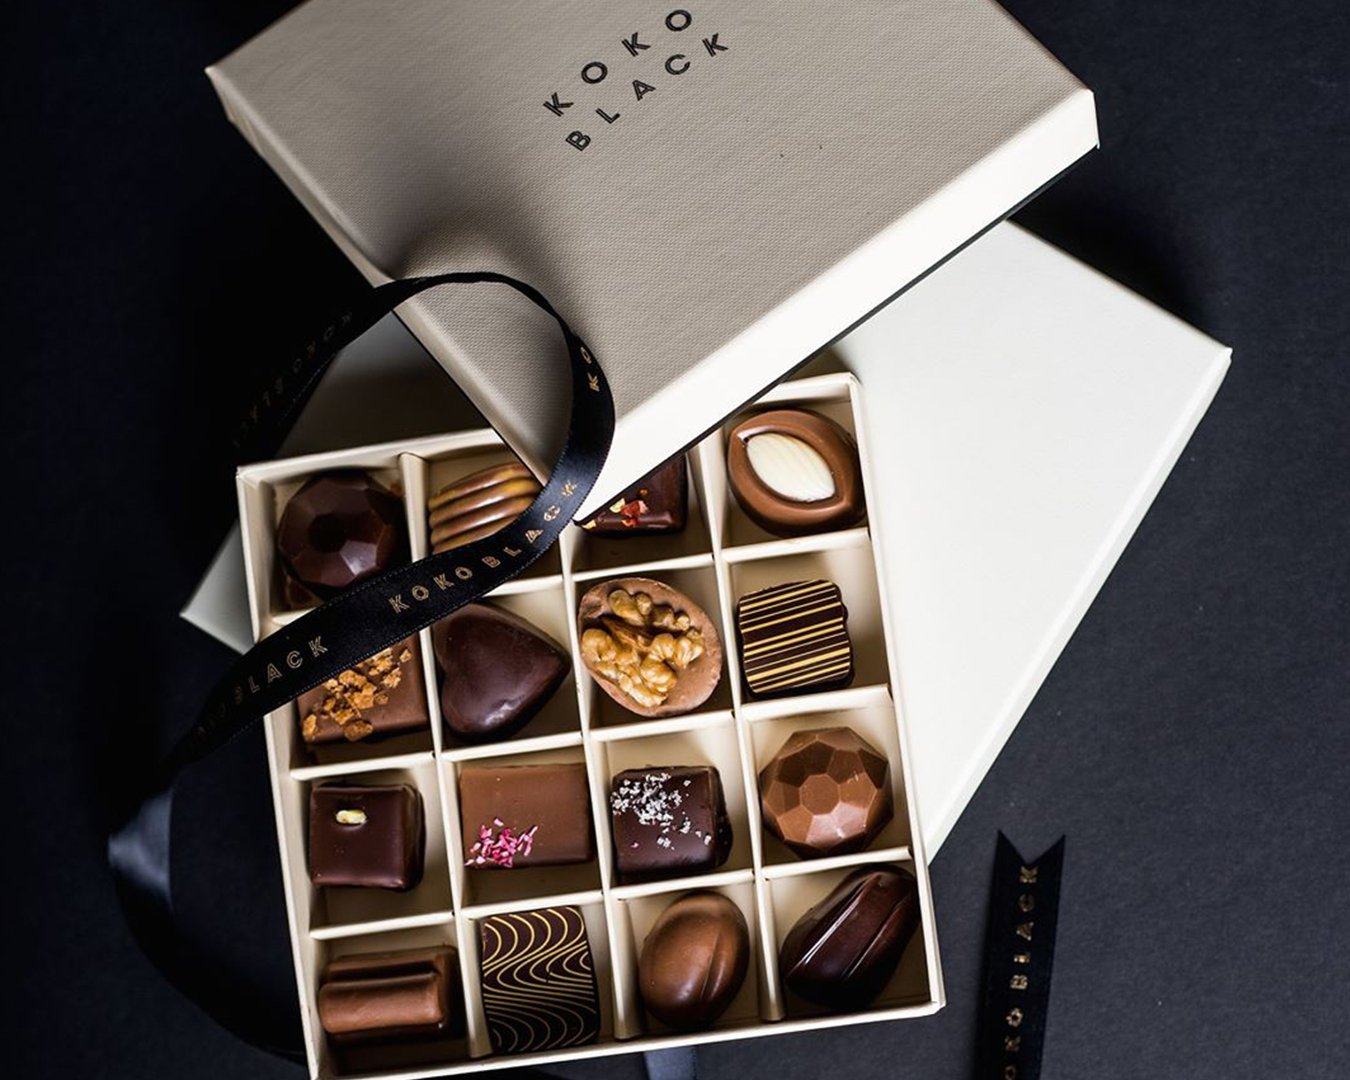 a white box lies open on a table, filled with various chocolate.